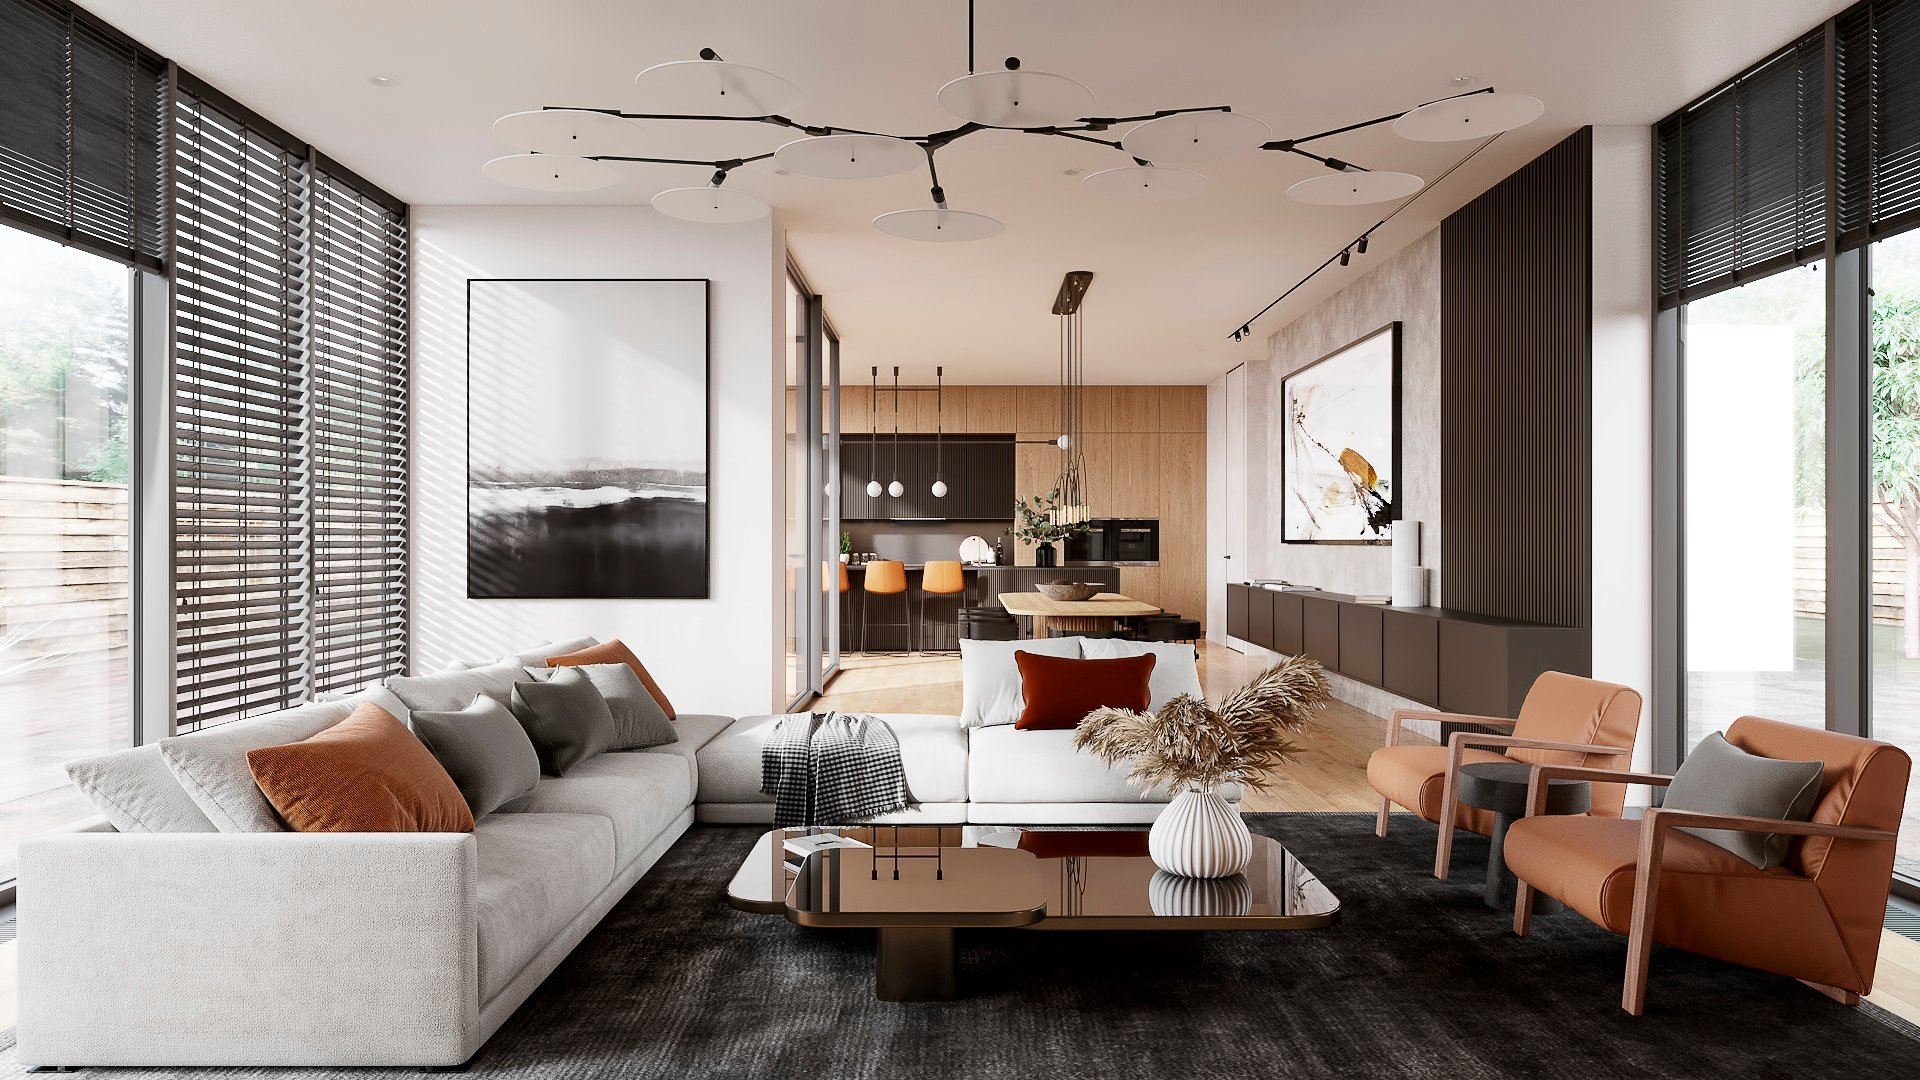 Interior Design Reference for a CGI Project